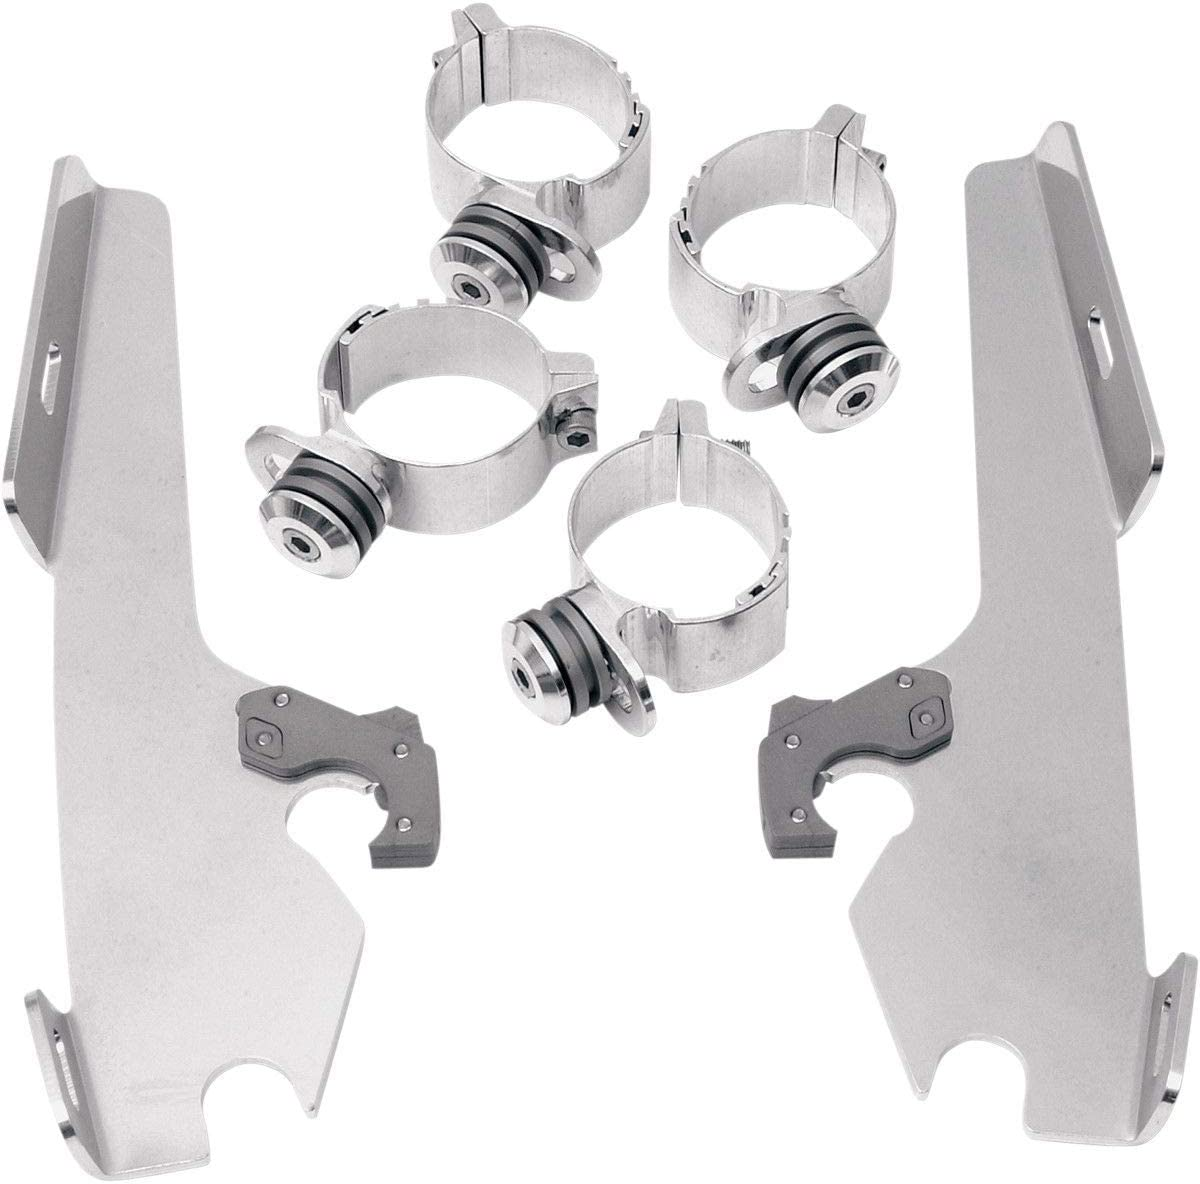 Memphis Shades MEM8969 Polished Trigger-Lock Mount Kit for Yamaha XVS1300A and XVS950 V-Star 2007-2015